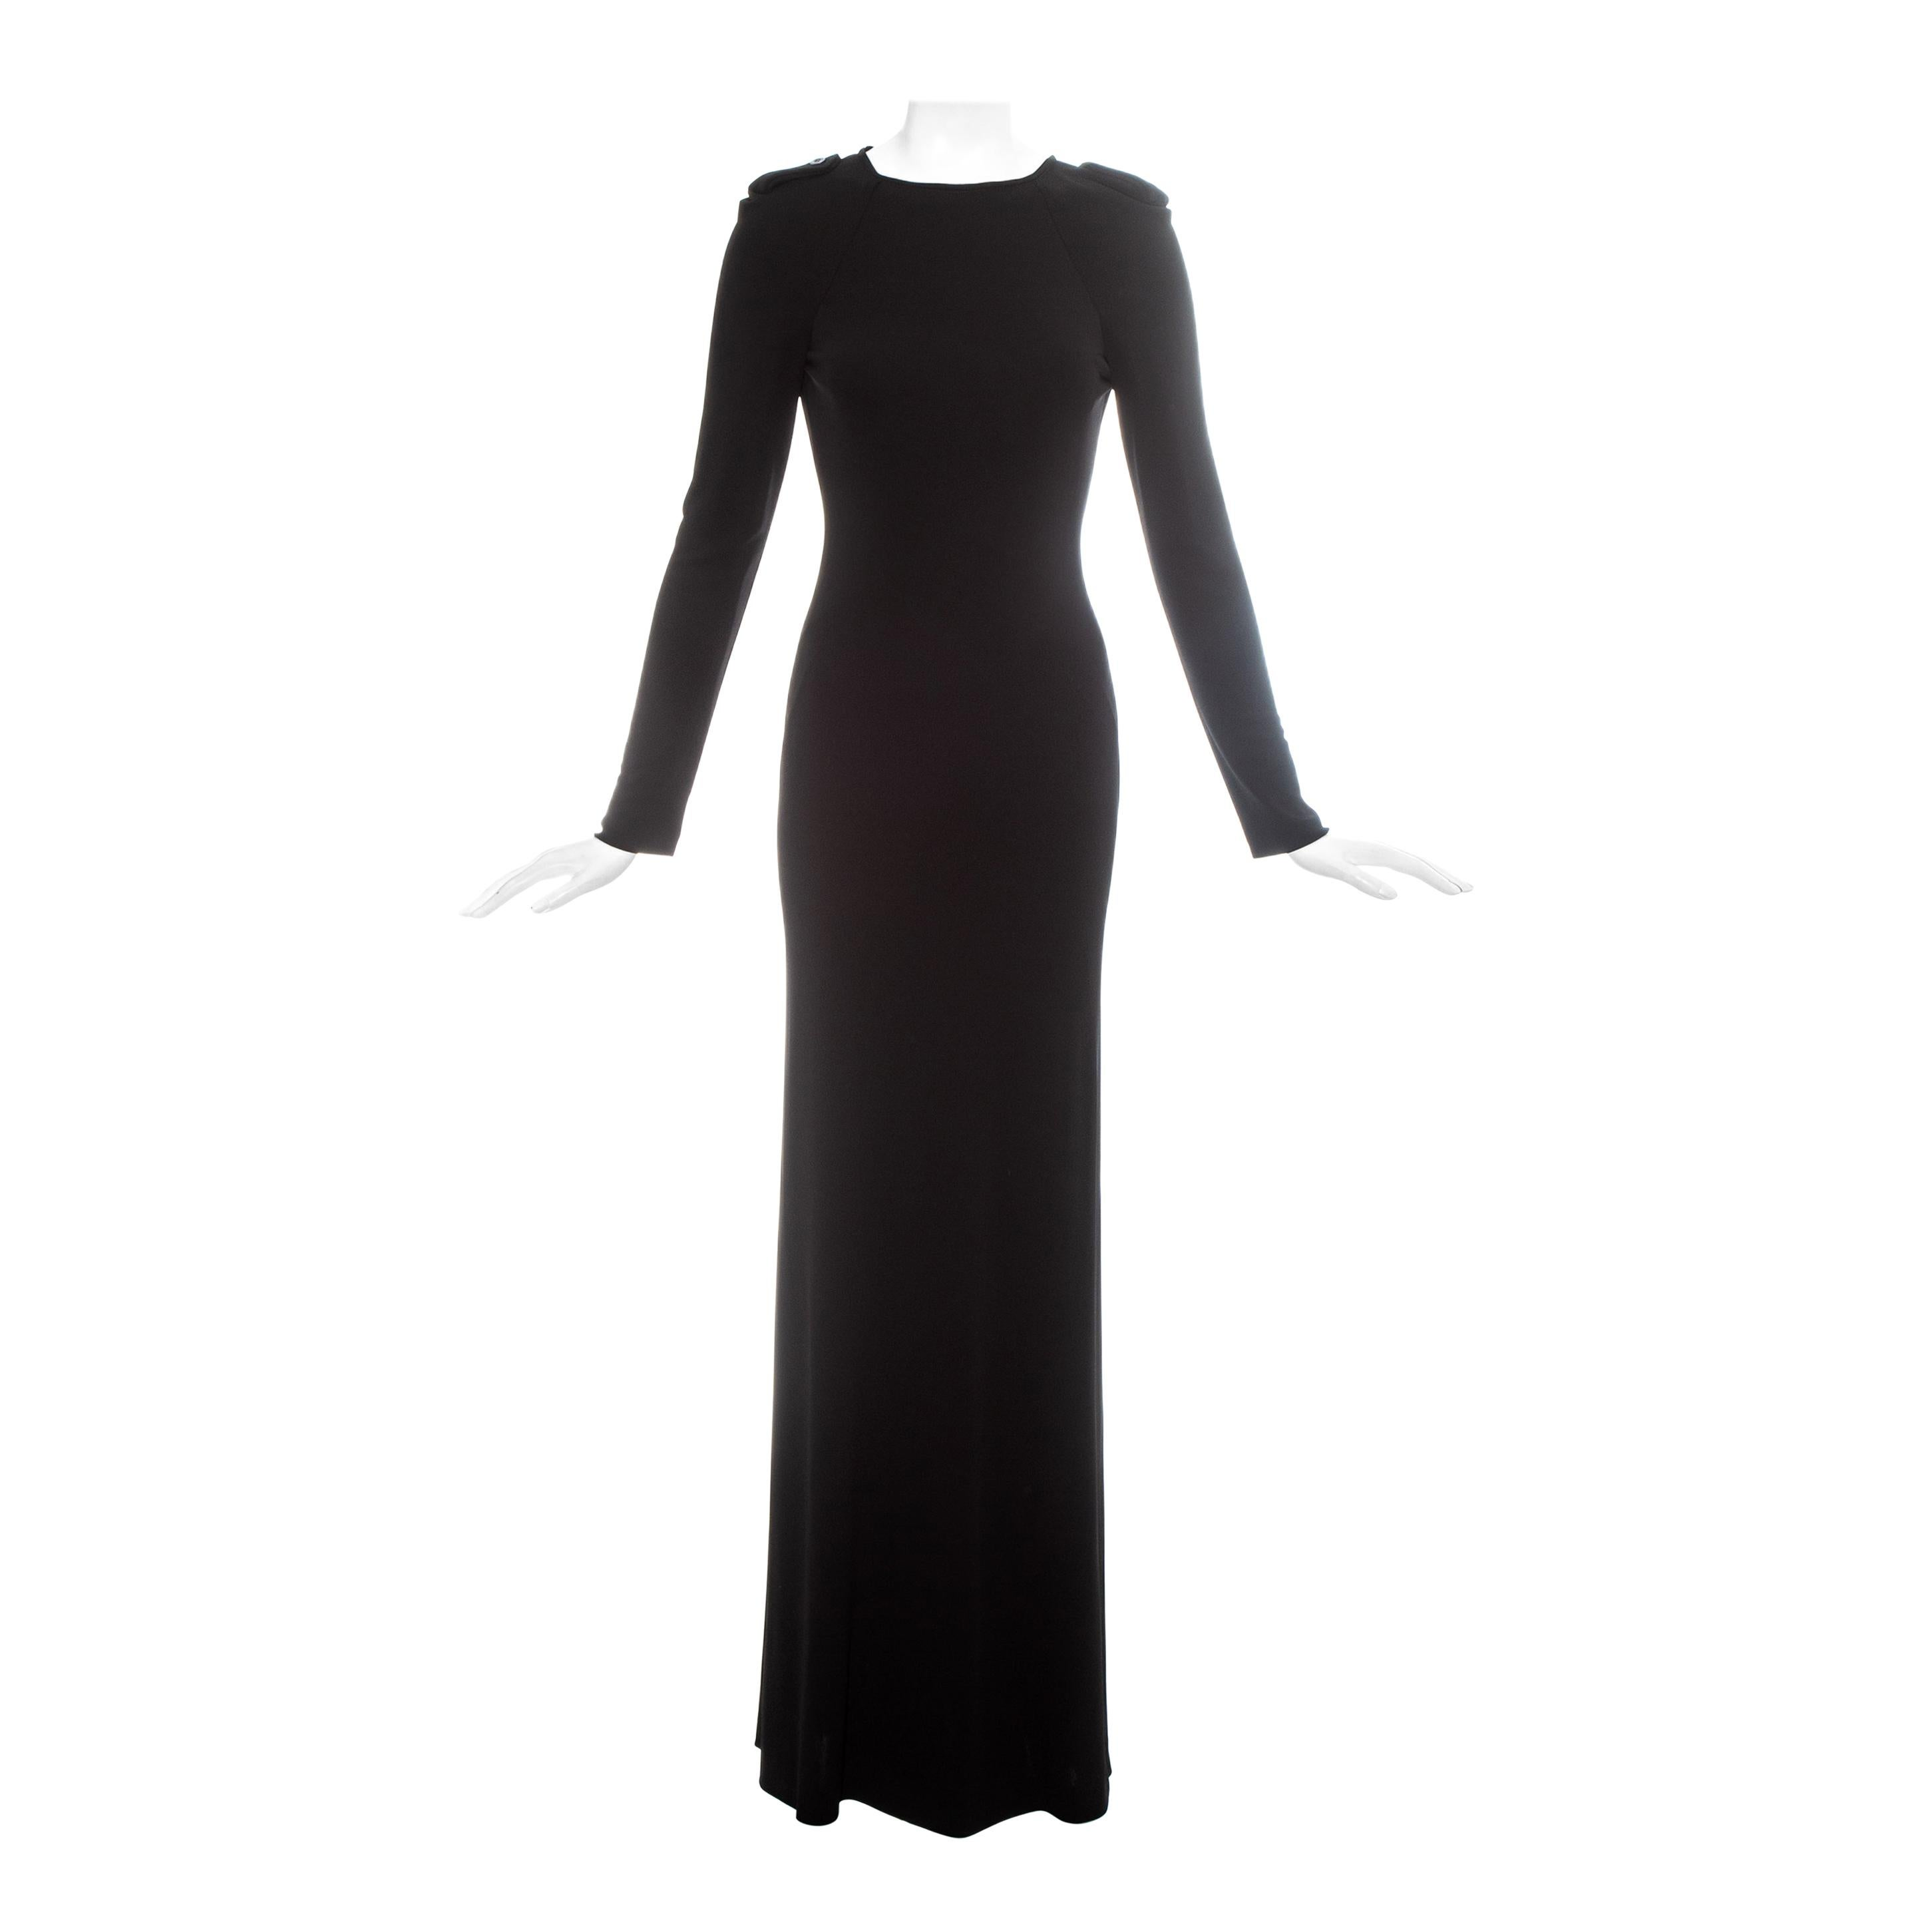 Gucci by Tom Ford black silk open back evening dress, fw 1996